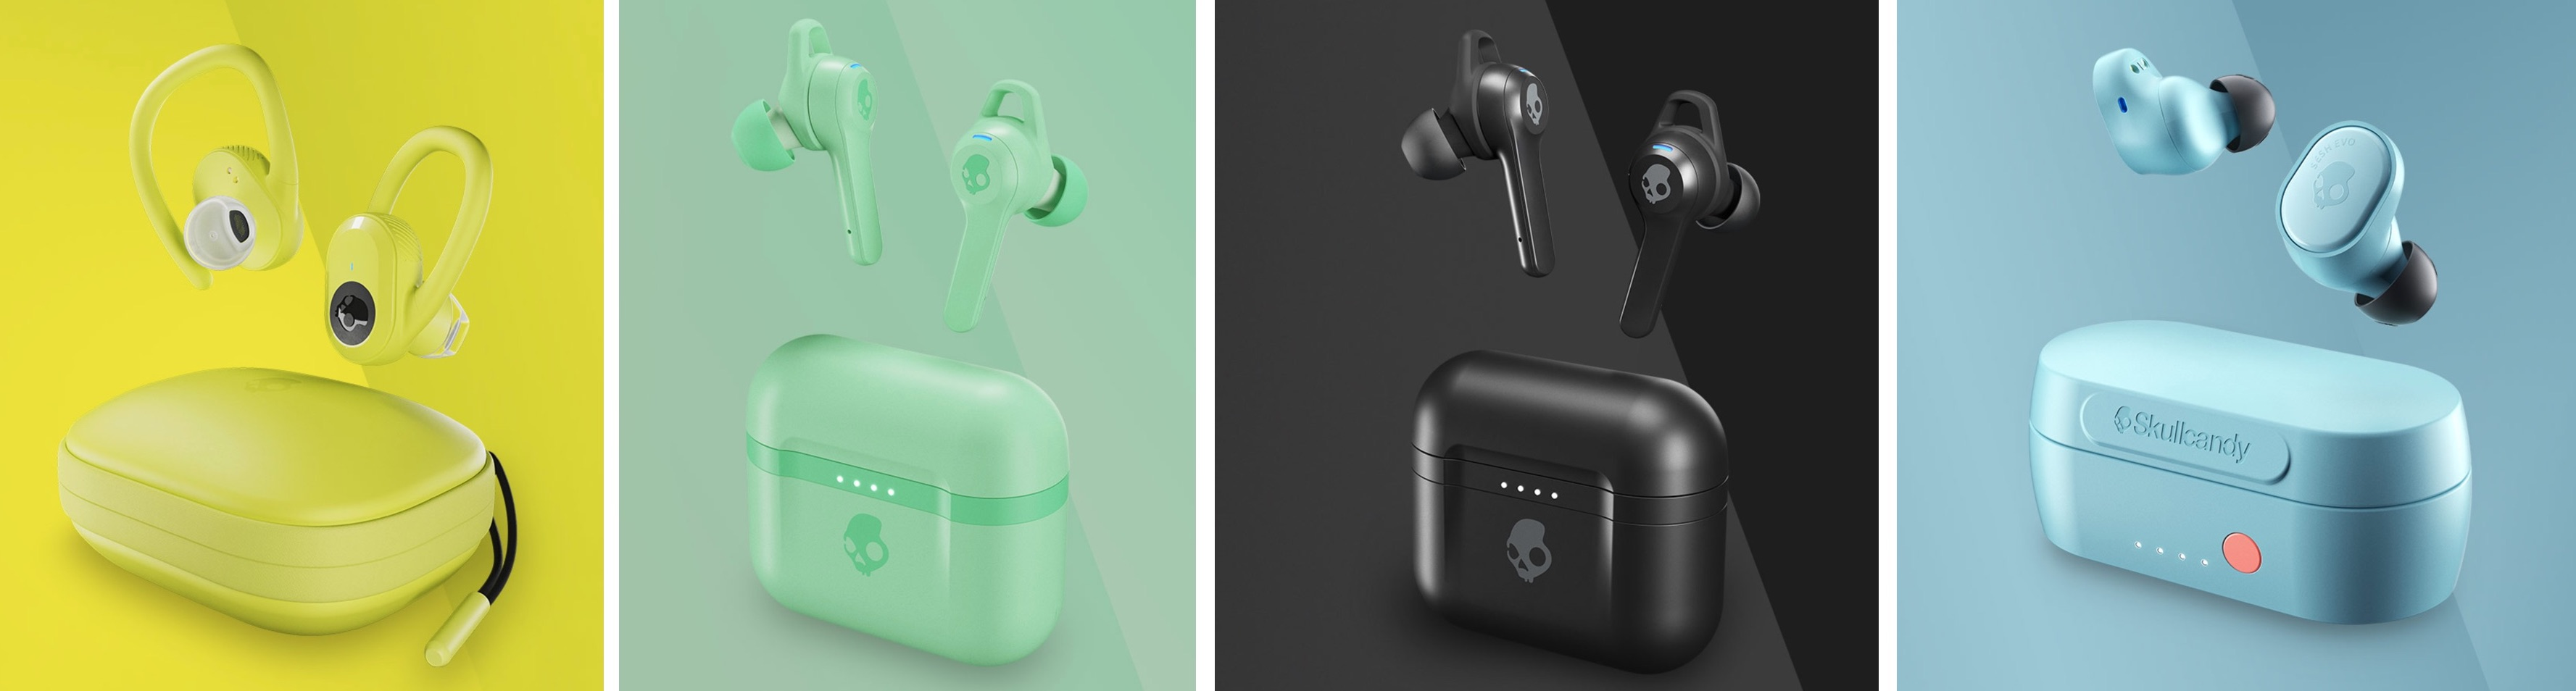 Skullcandy Launches Four New Headphones With Built-In Tile Bluetooth Tracking Support